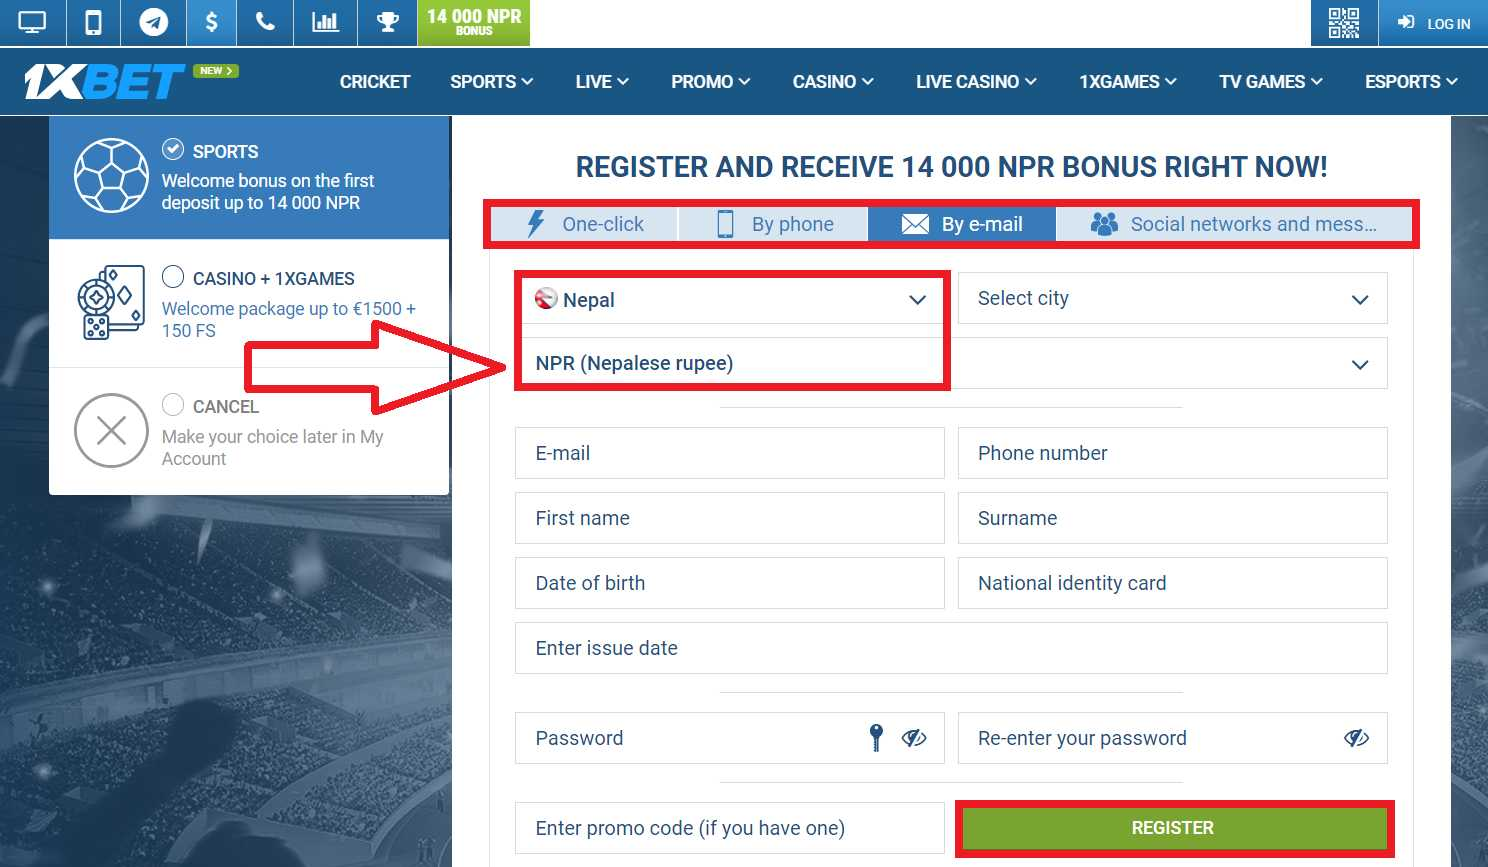 Benefits of 1XBET after creating an account and login